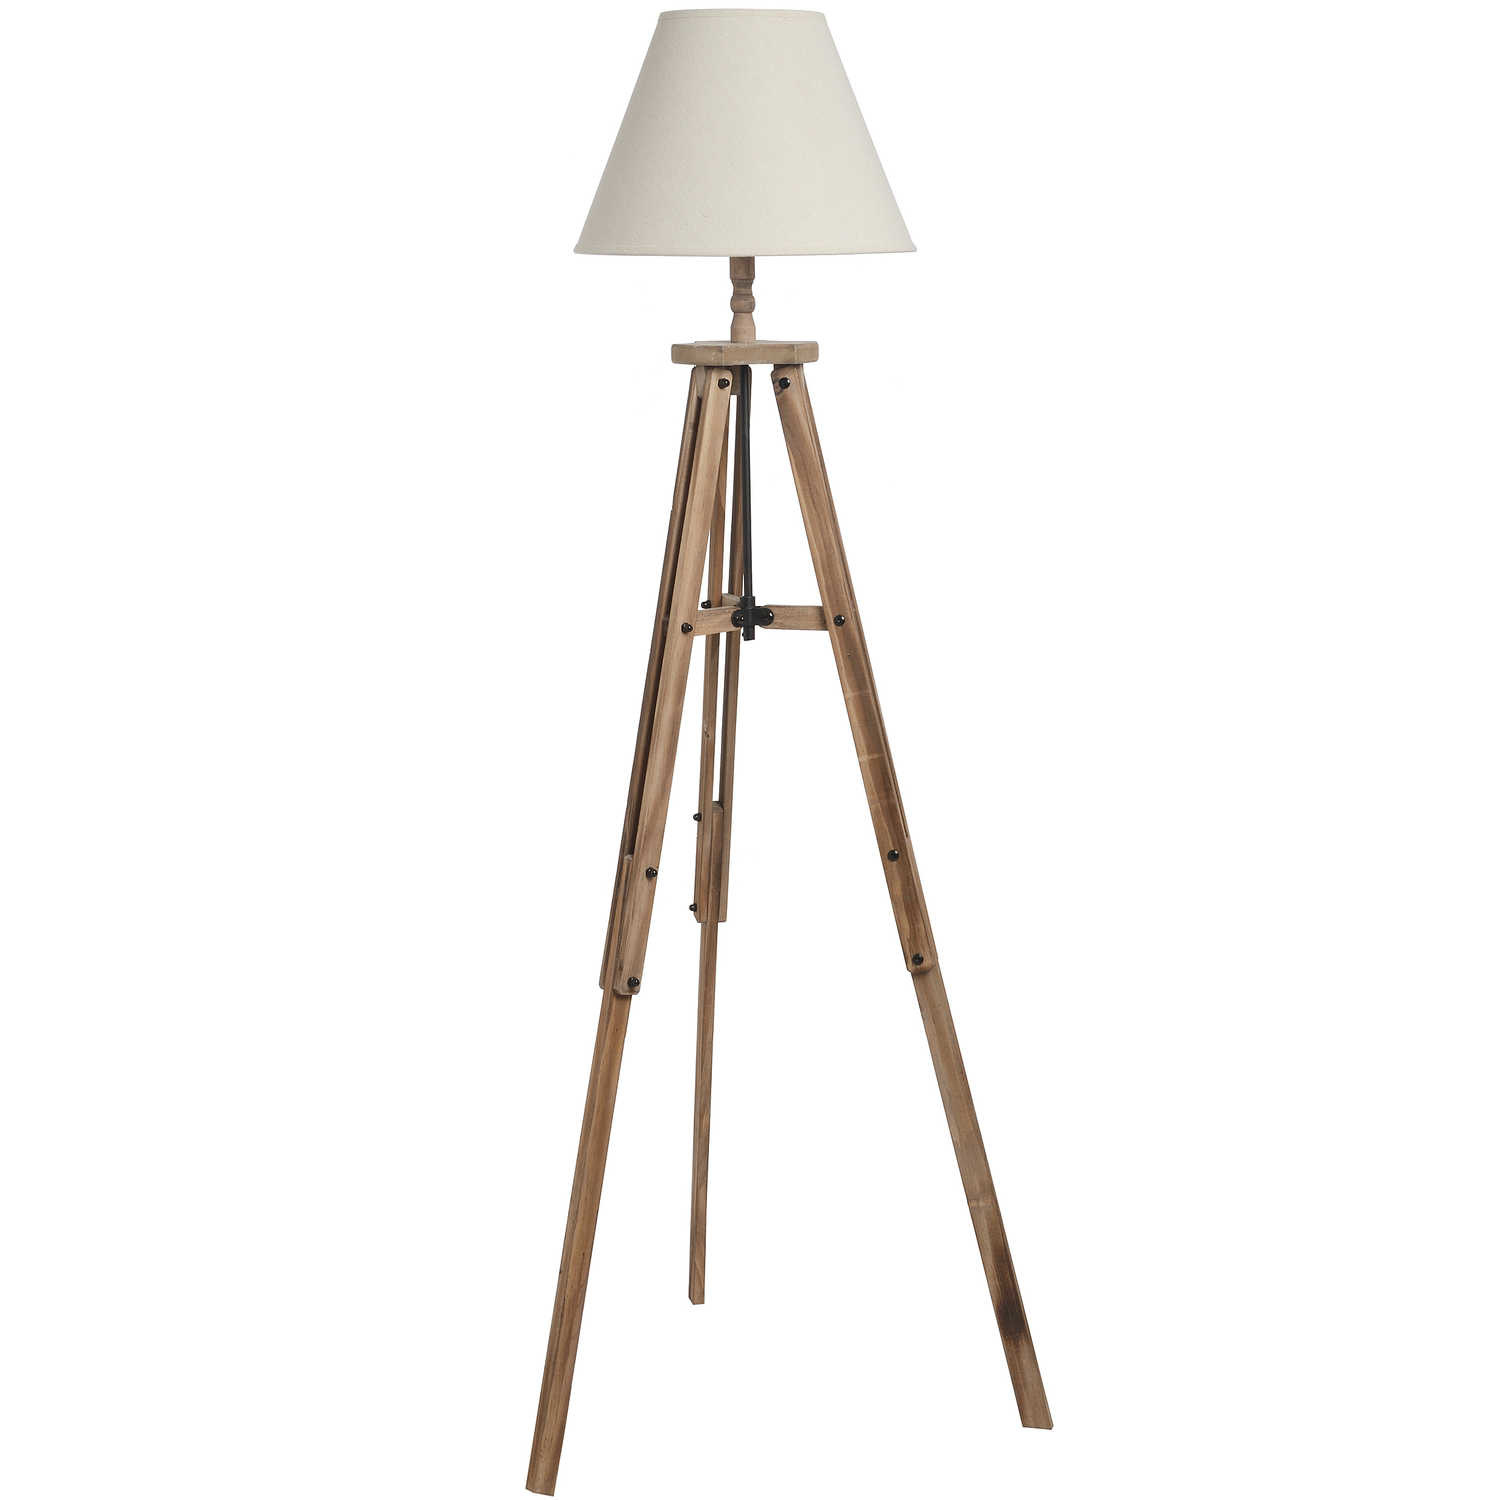 Hill Interiors Wooden Tripod Lamp Set - Floor Lamp and Table Lamp